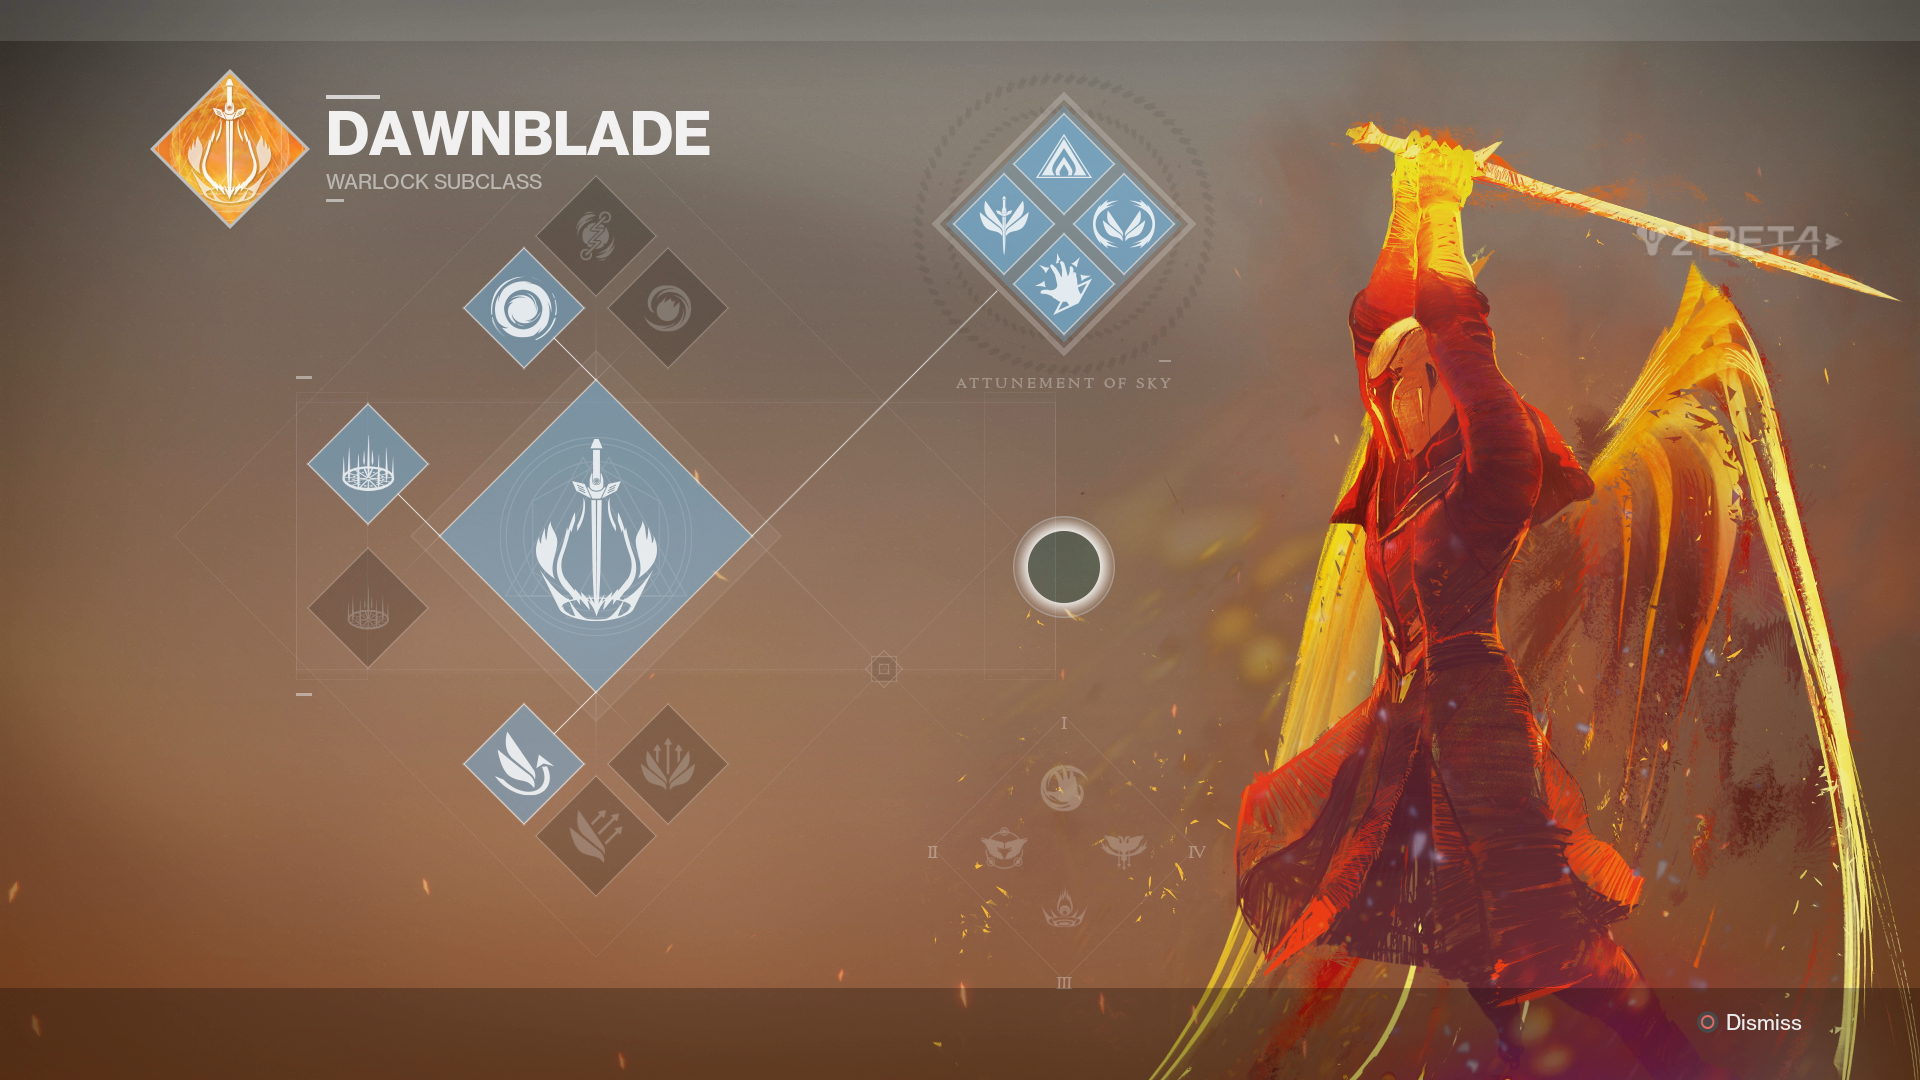 Destiny 2 Warlock Dawnblade Super Abilities And Grenades